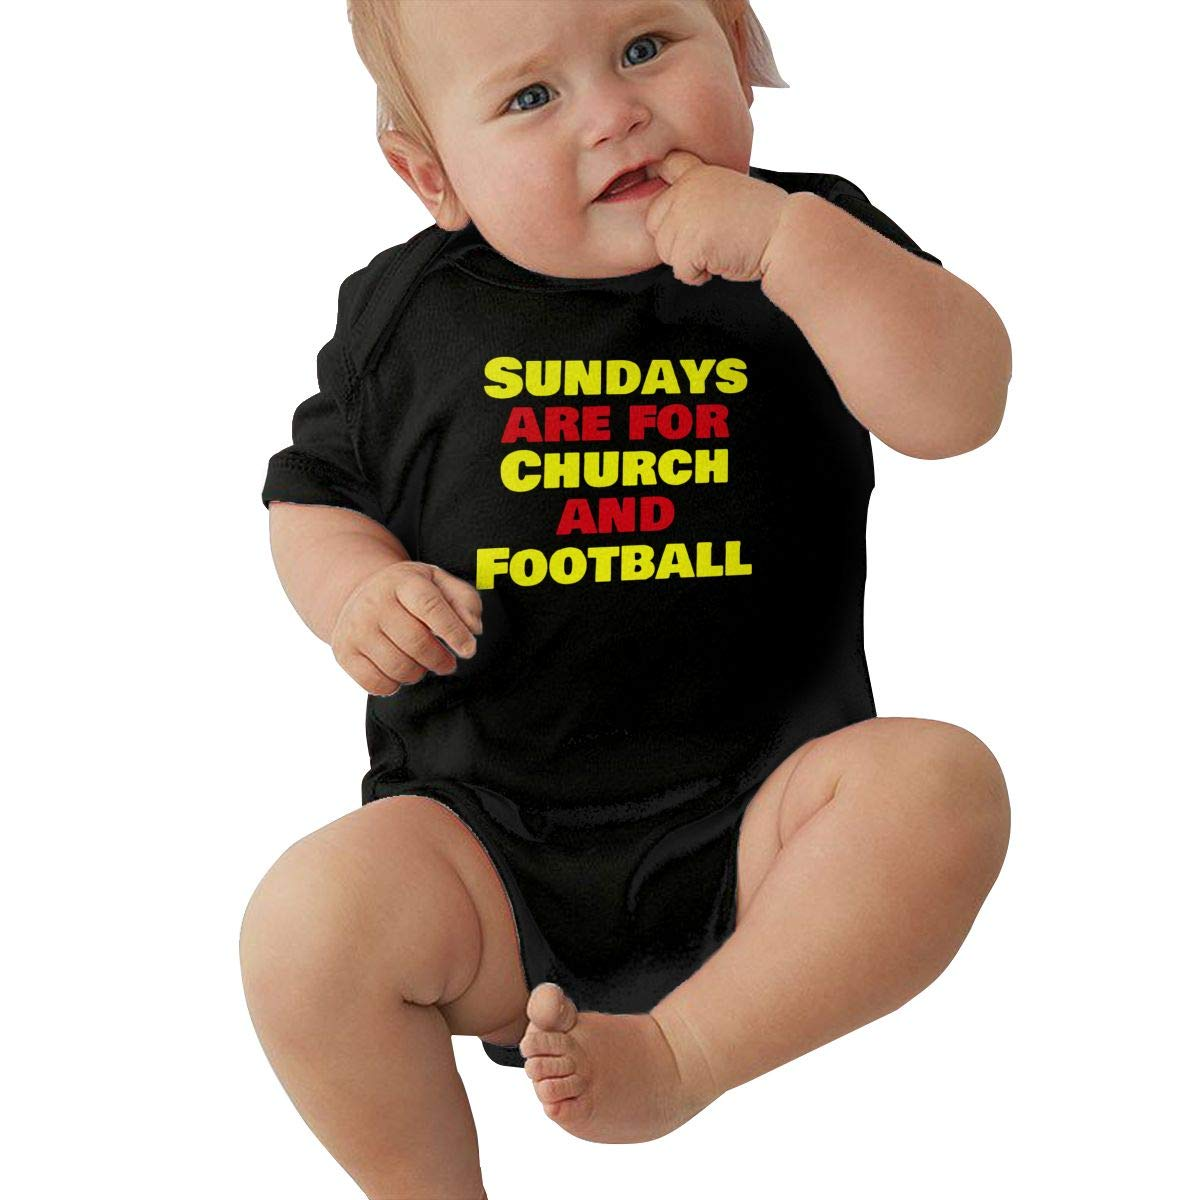 Sundays are for Church and Football Infant Baby Girl Boy Romper Jumpsuit Short Sleeve Bodysuit Tops Clothes